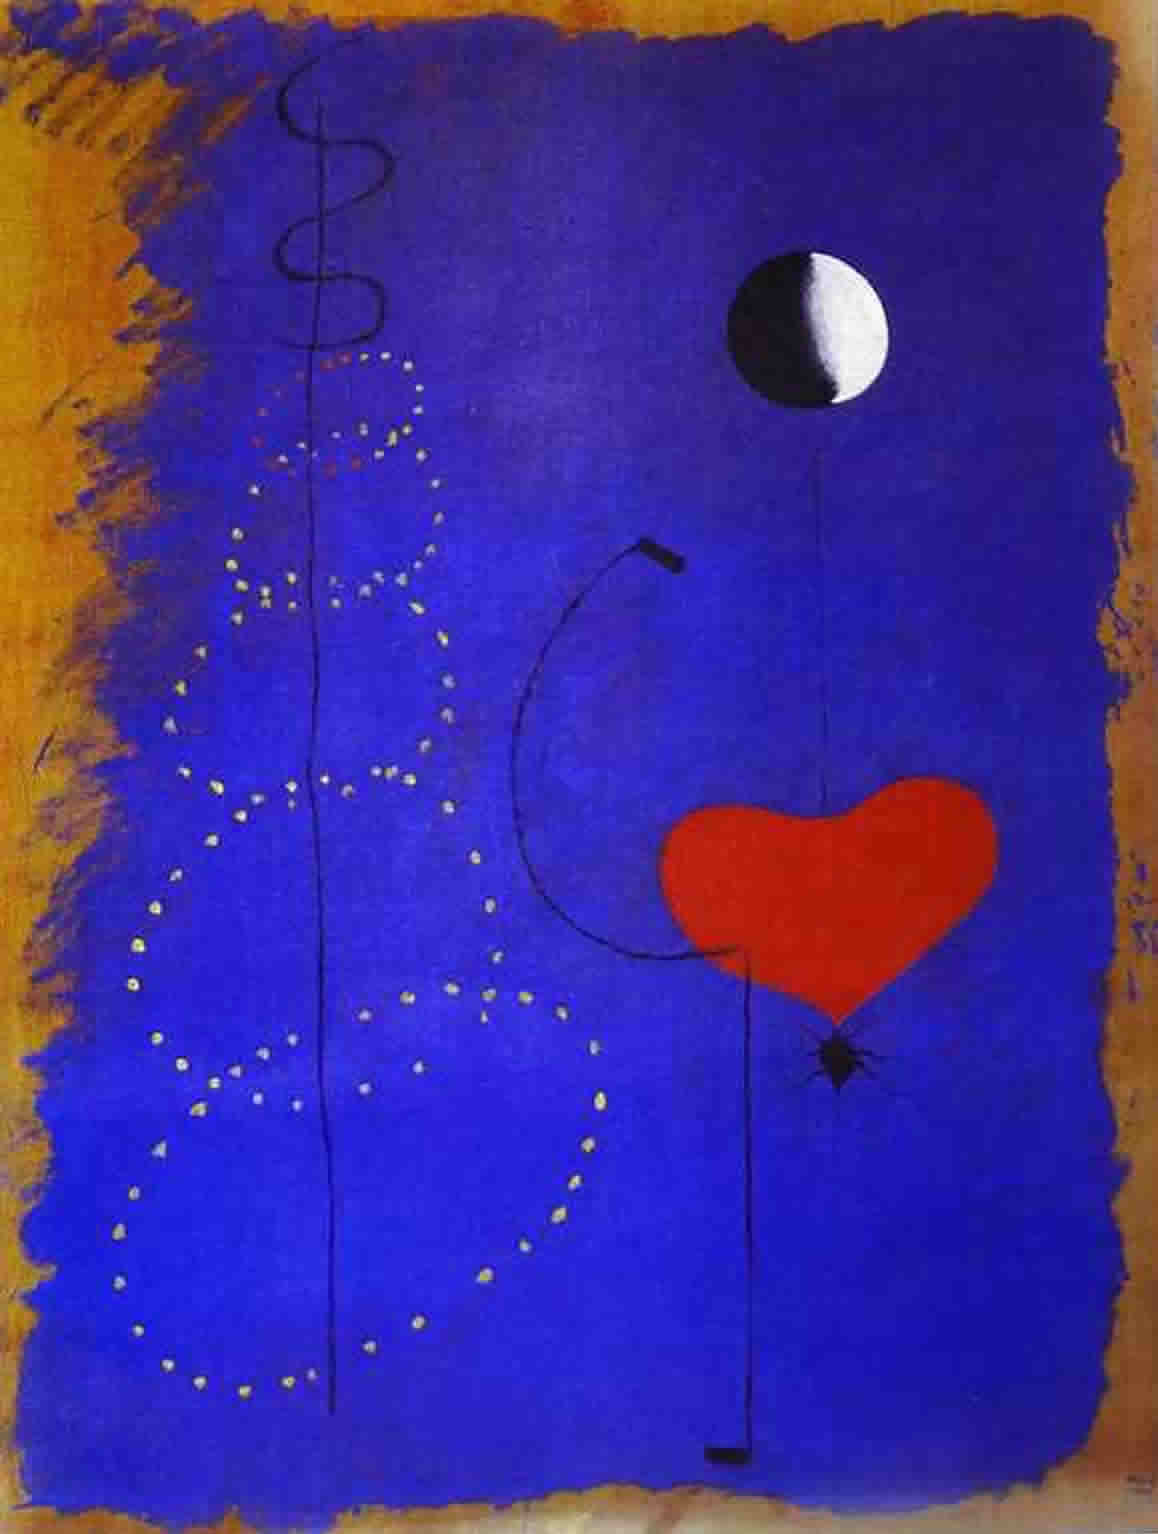 Miro's Dancer - blue background, red heart with supporting lines and dots - and the moon